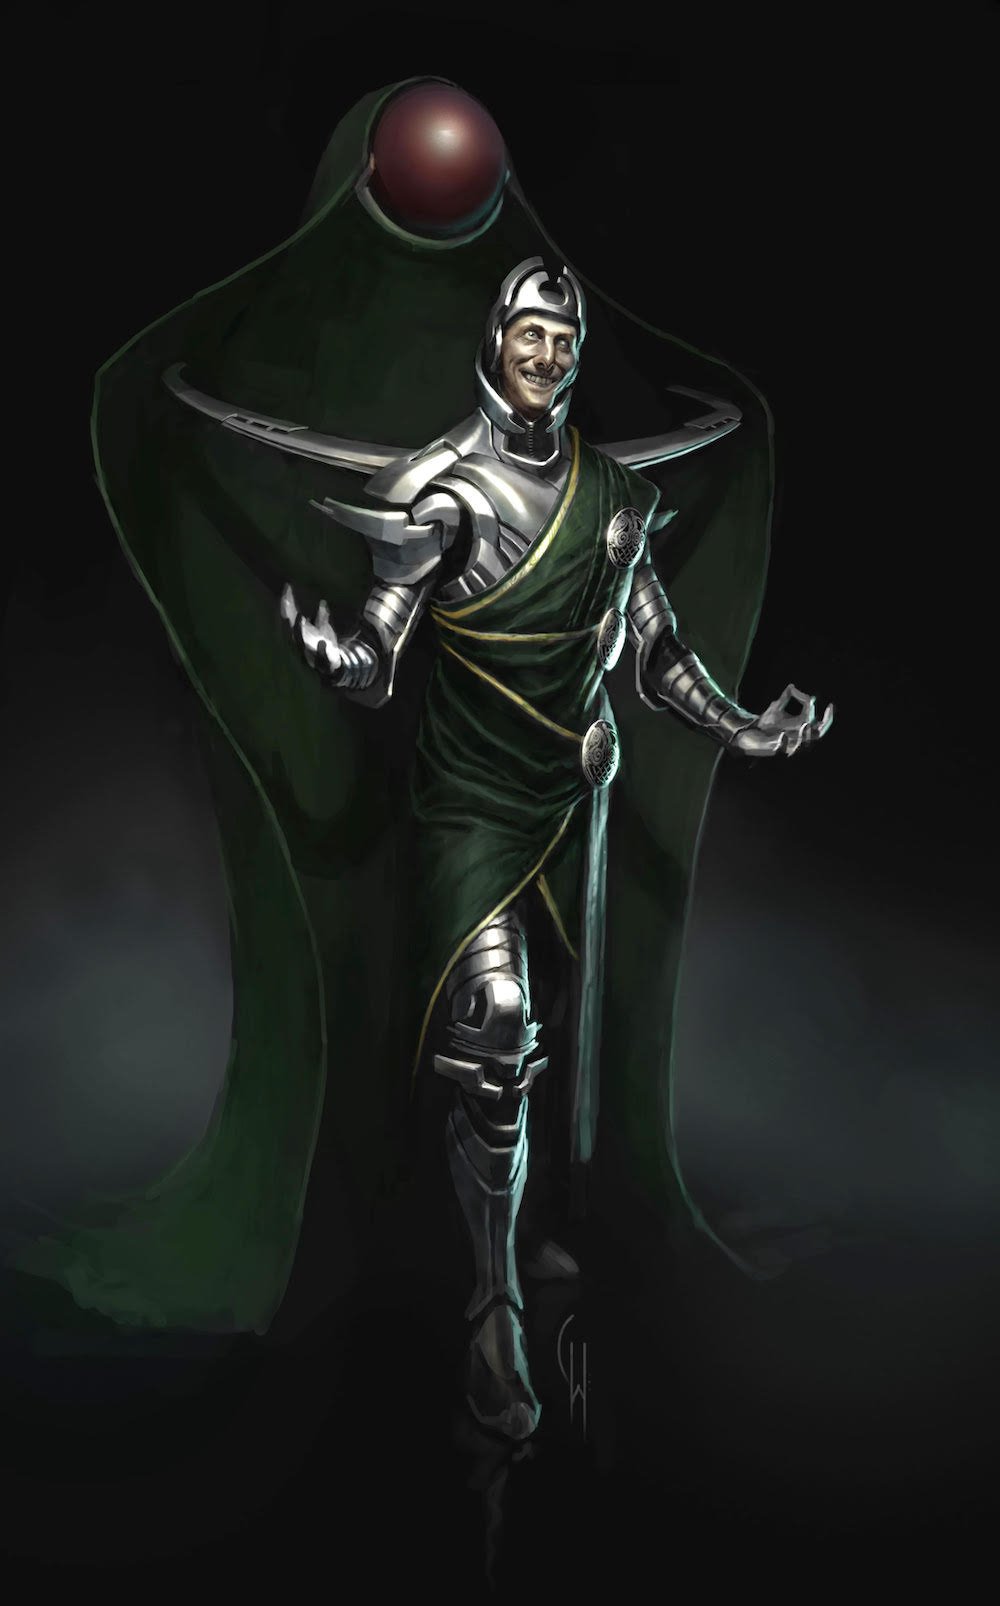 Illustration of Loki as a concept, that looks very mechanical, like he's wearing a futuristic suit of armor